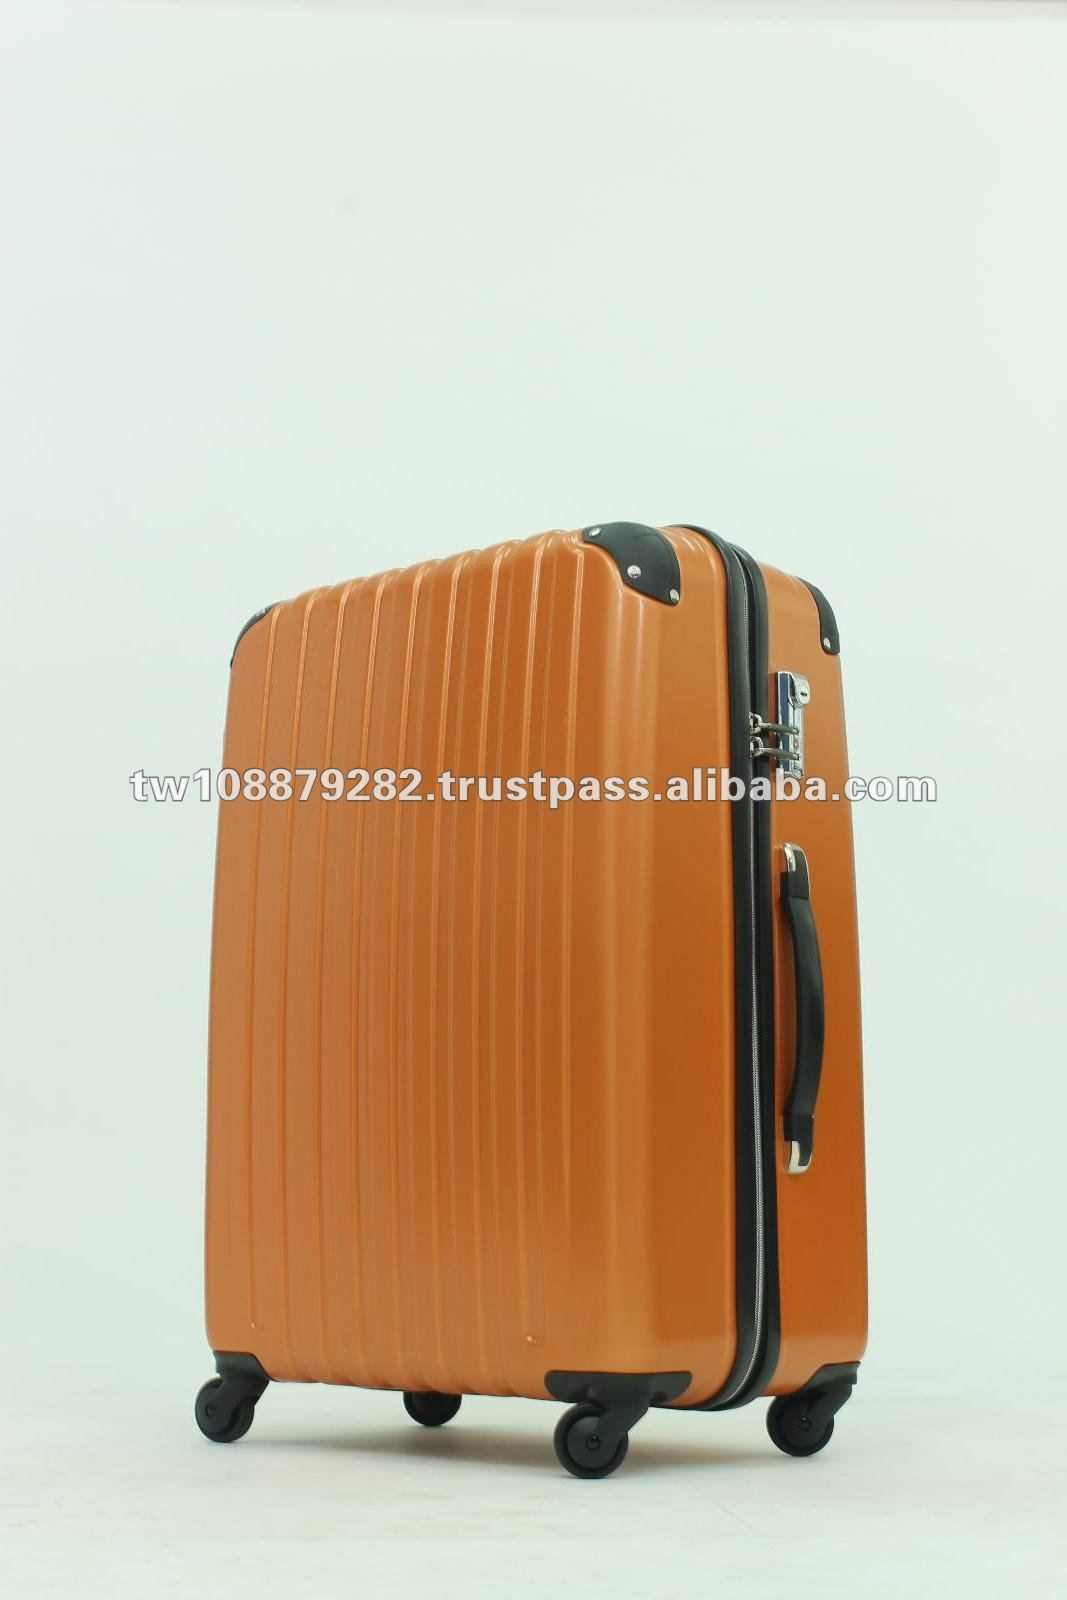 New Design Zipper Style PC Hard Suitcase Trolley Case